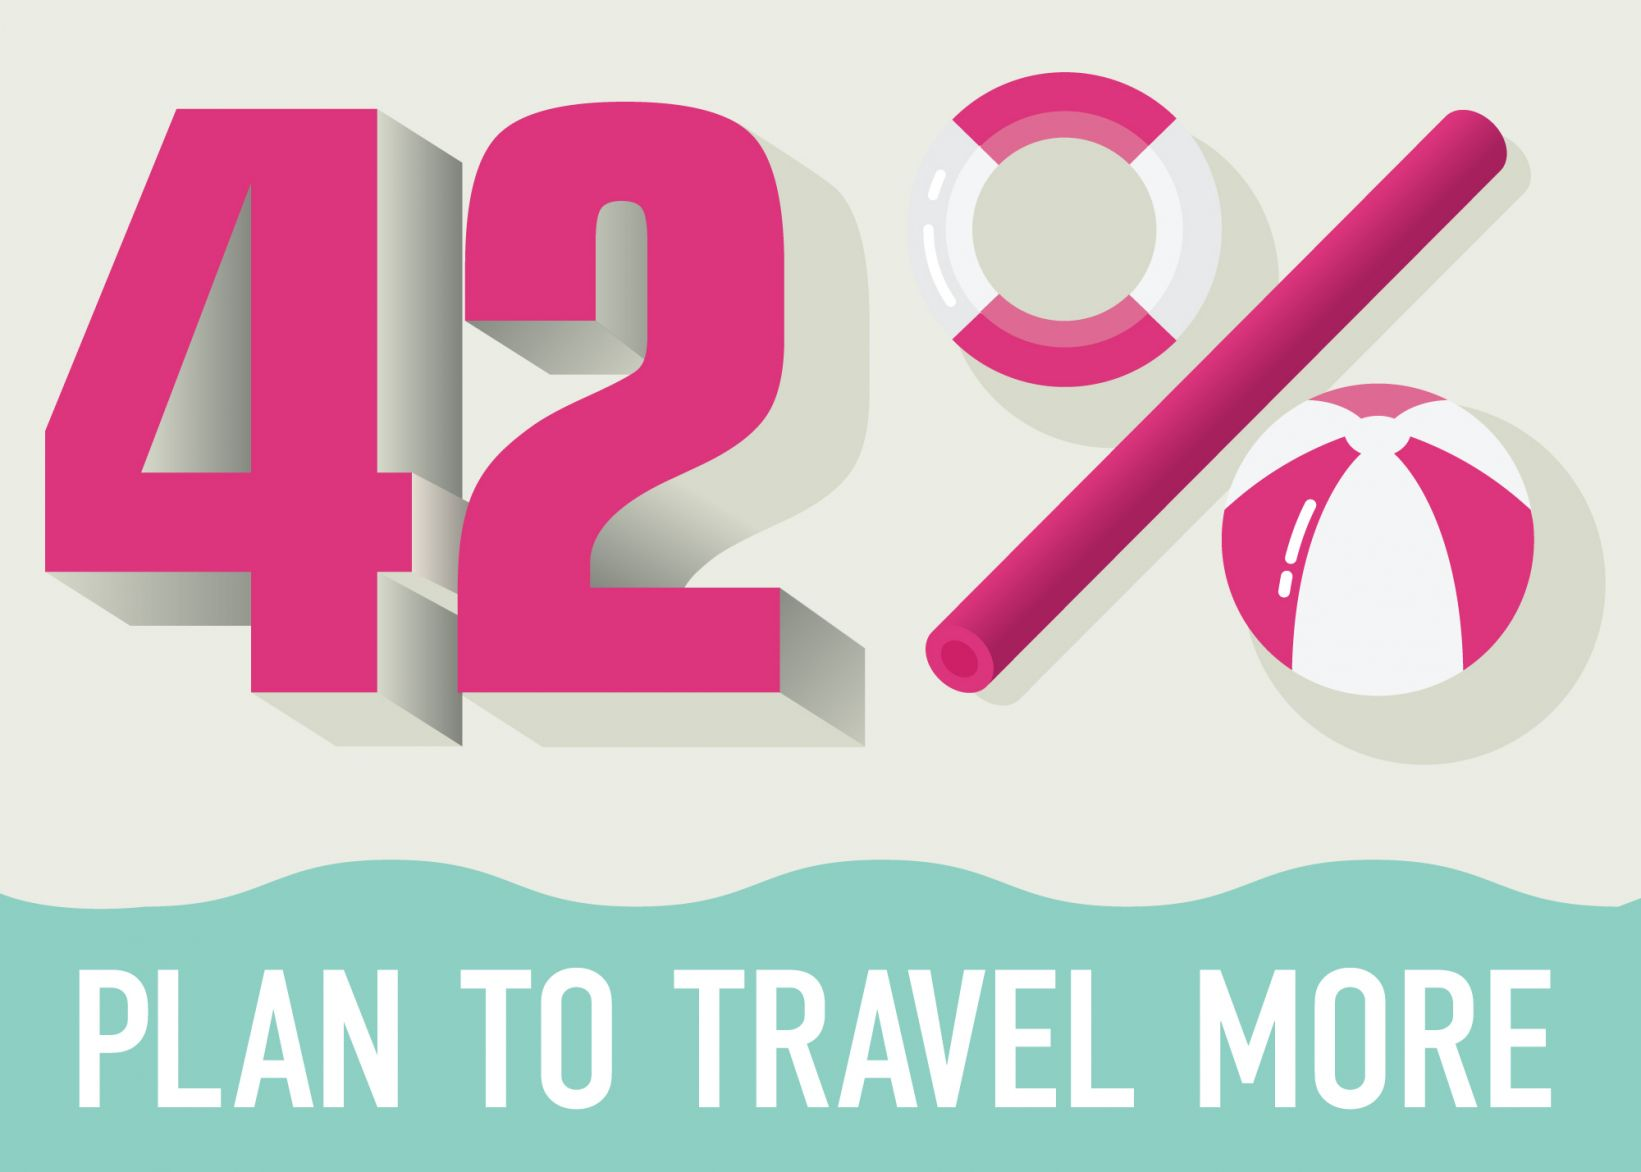 Results say Americans want to travel more.